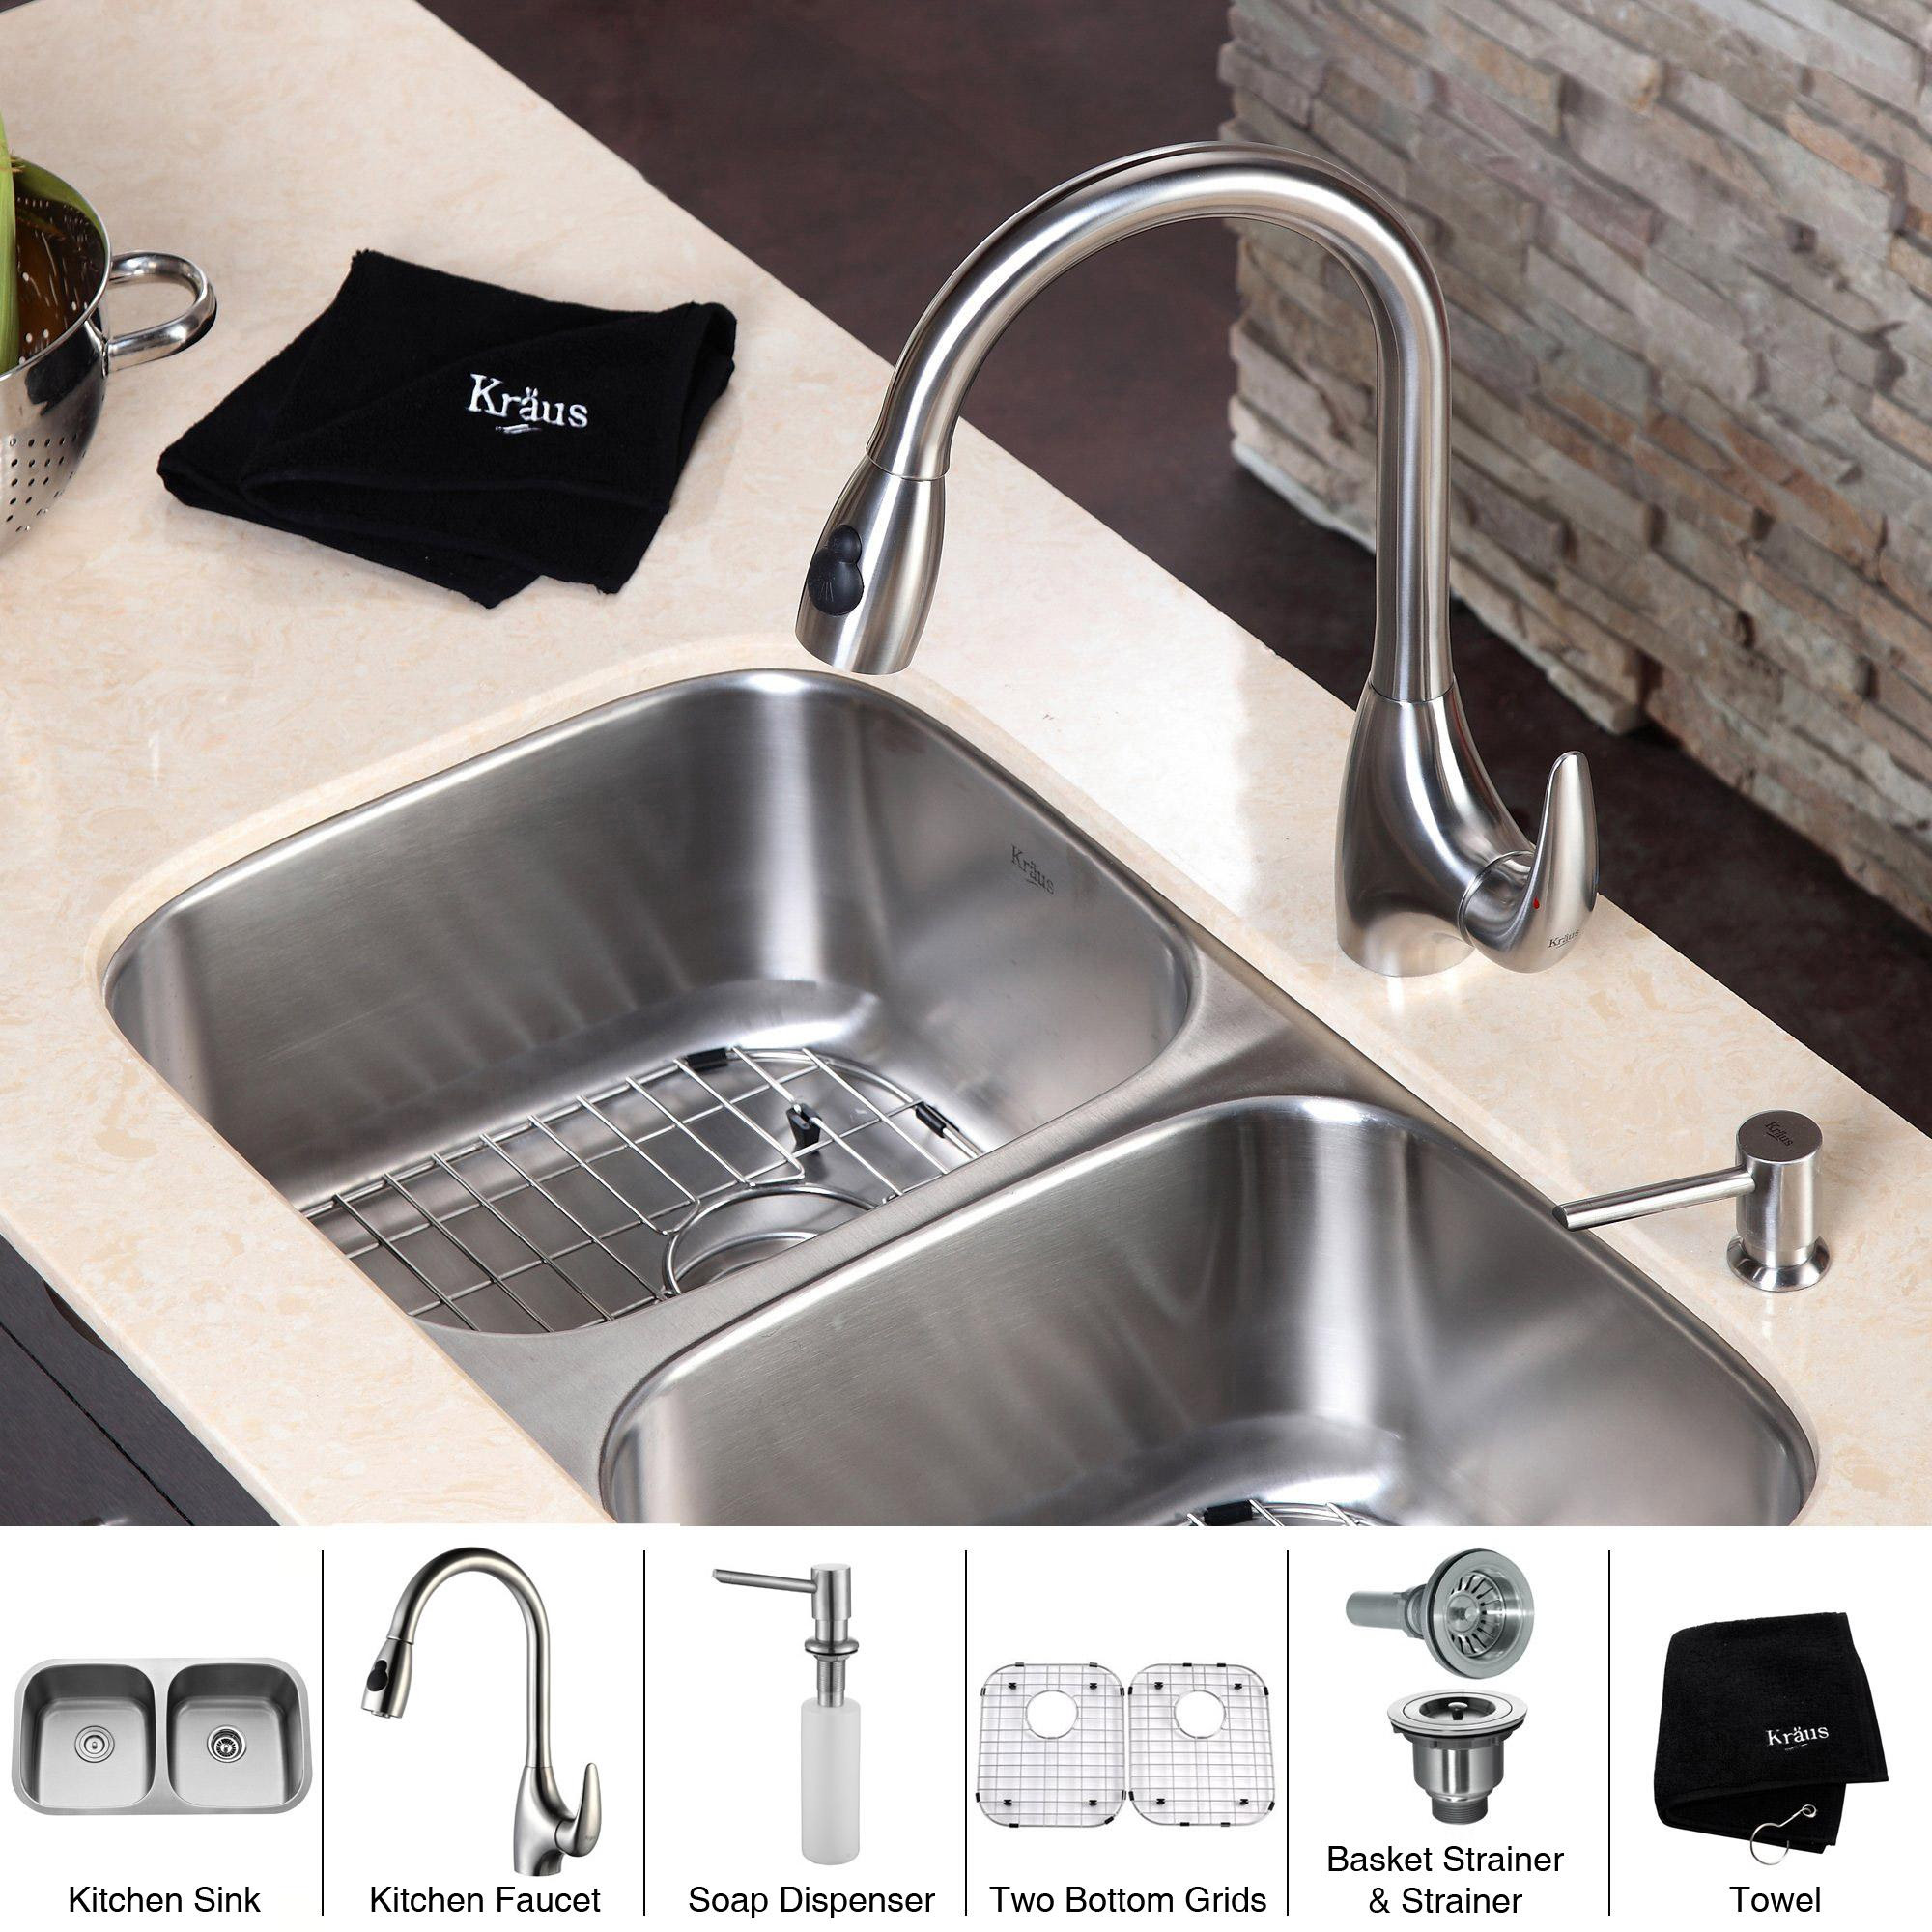 Kraus Kitchen Combo Set Stainless Steel Double Undermount Sinkfaucet